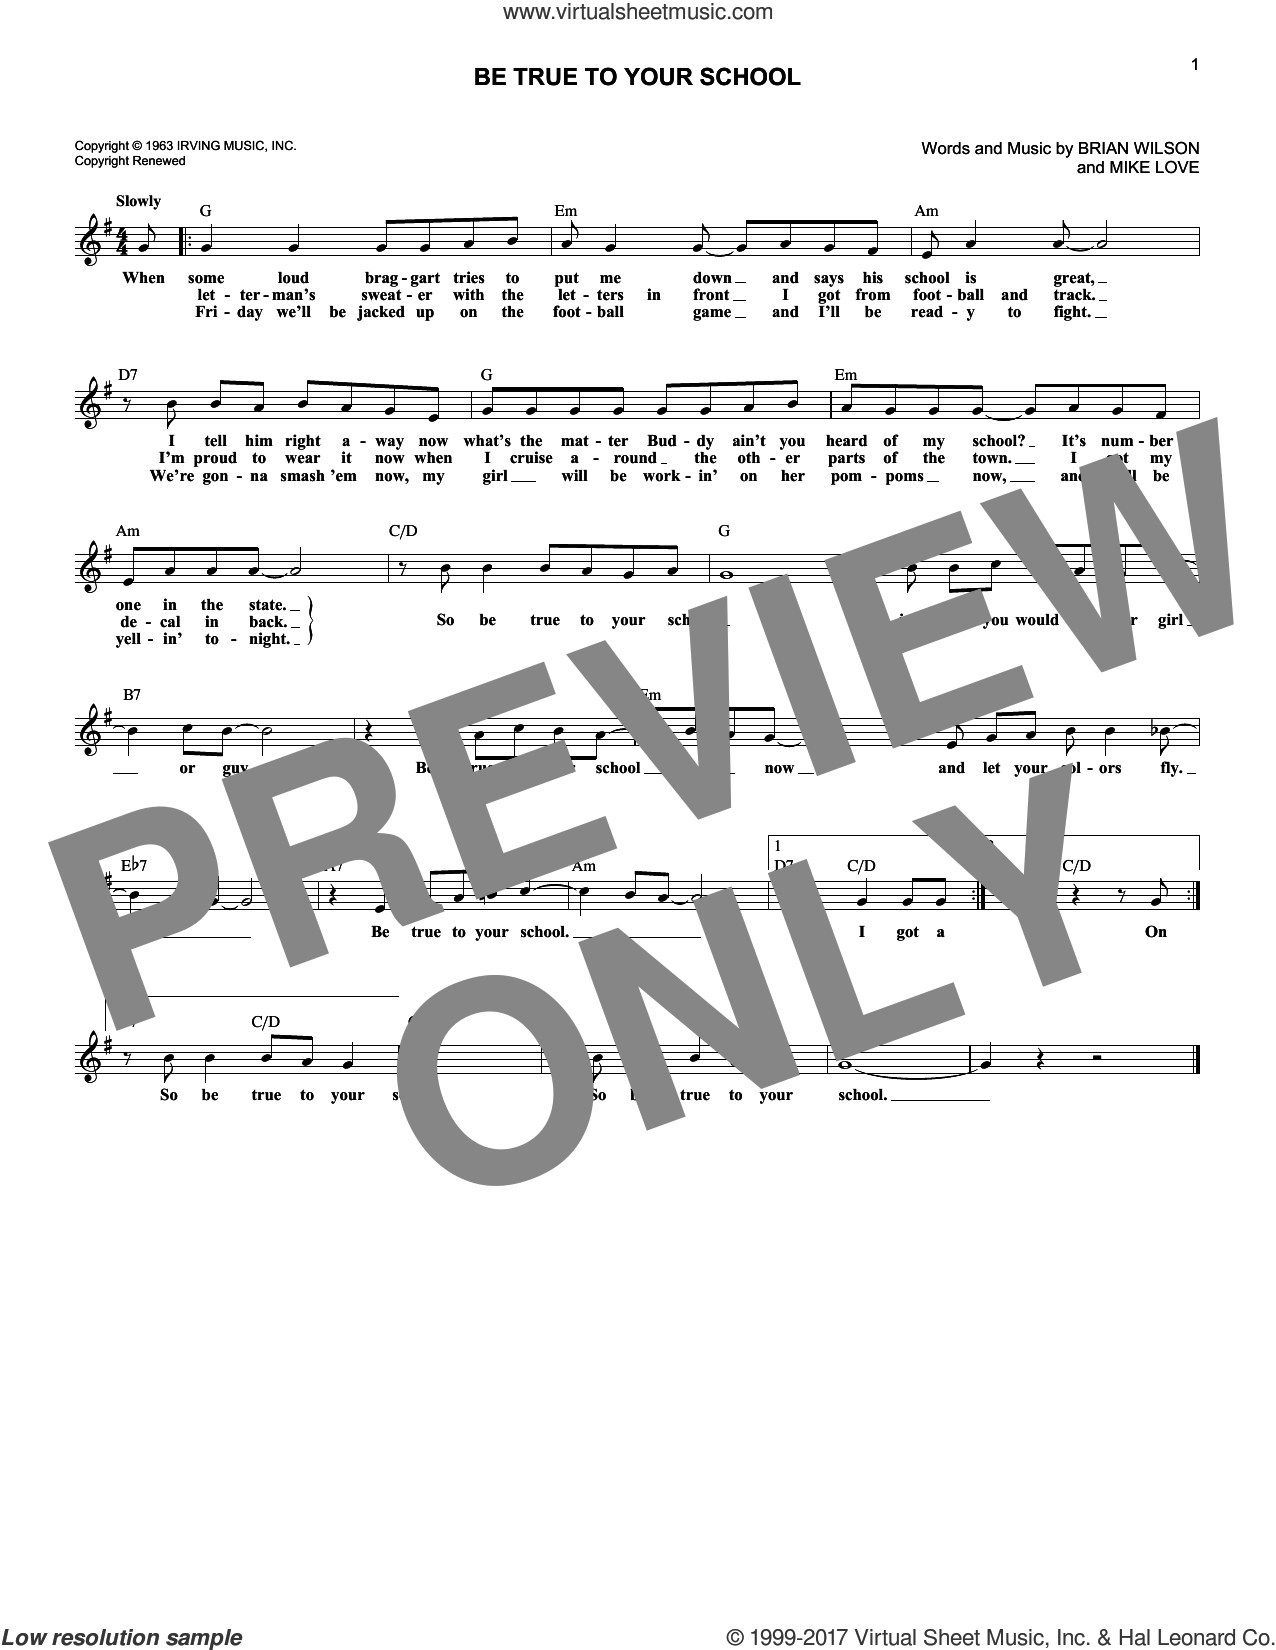 Be True To Your School sheet music for voice and other instruments (fake book) by The Beach Boys, Brian Wilson and Mike Love, intermediate skill level